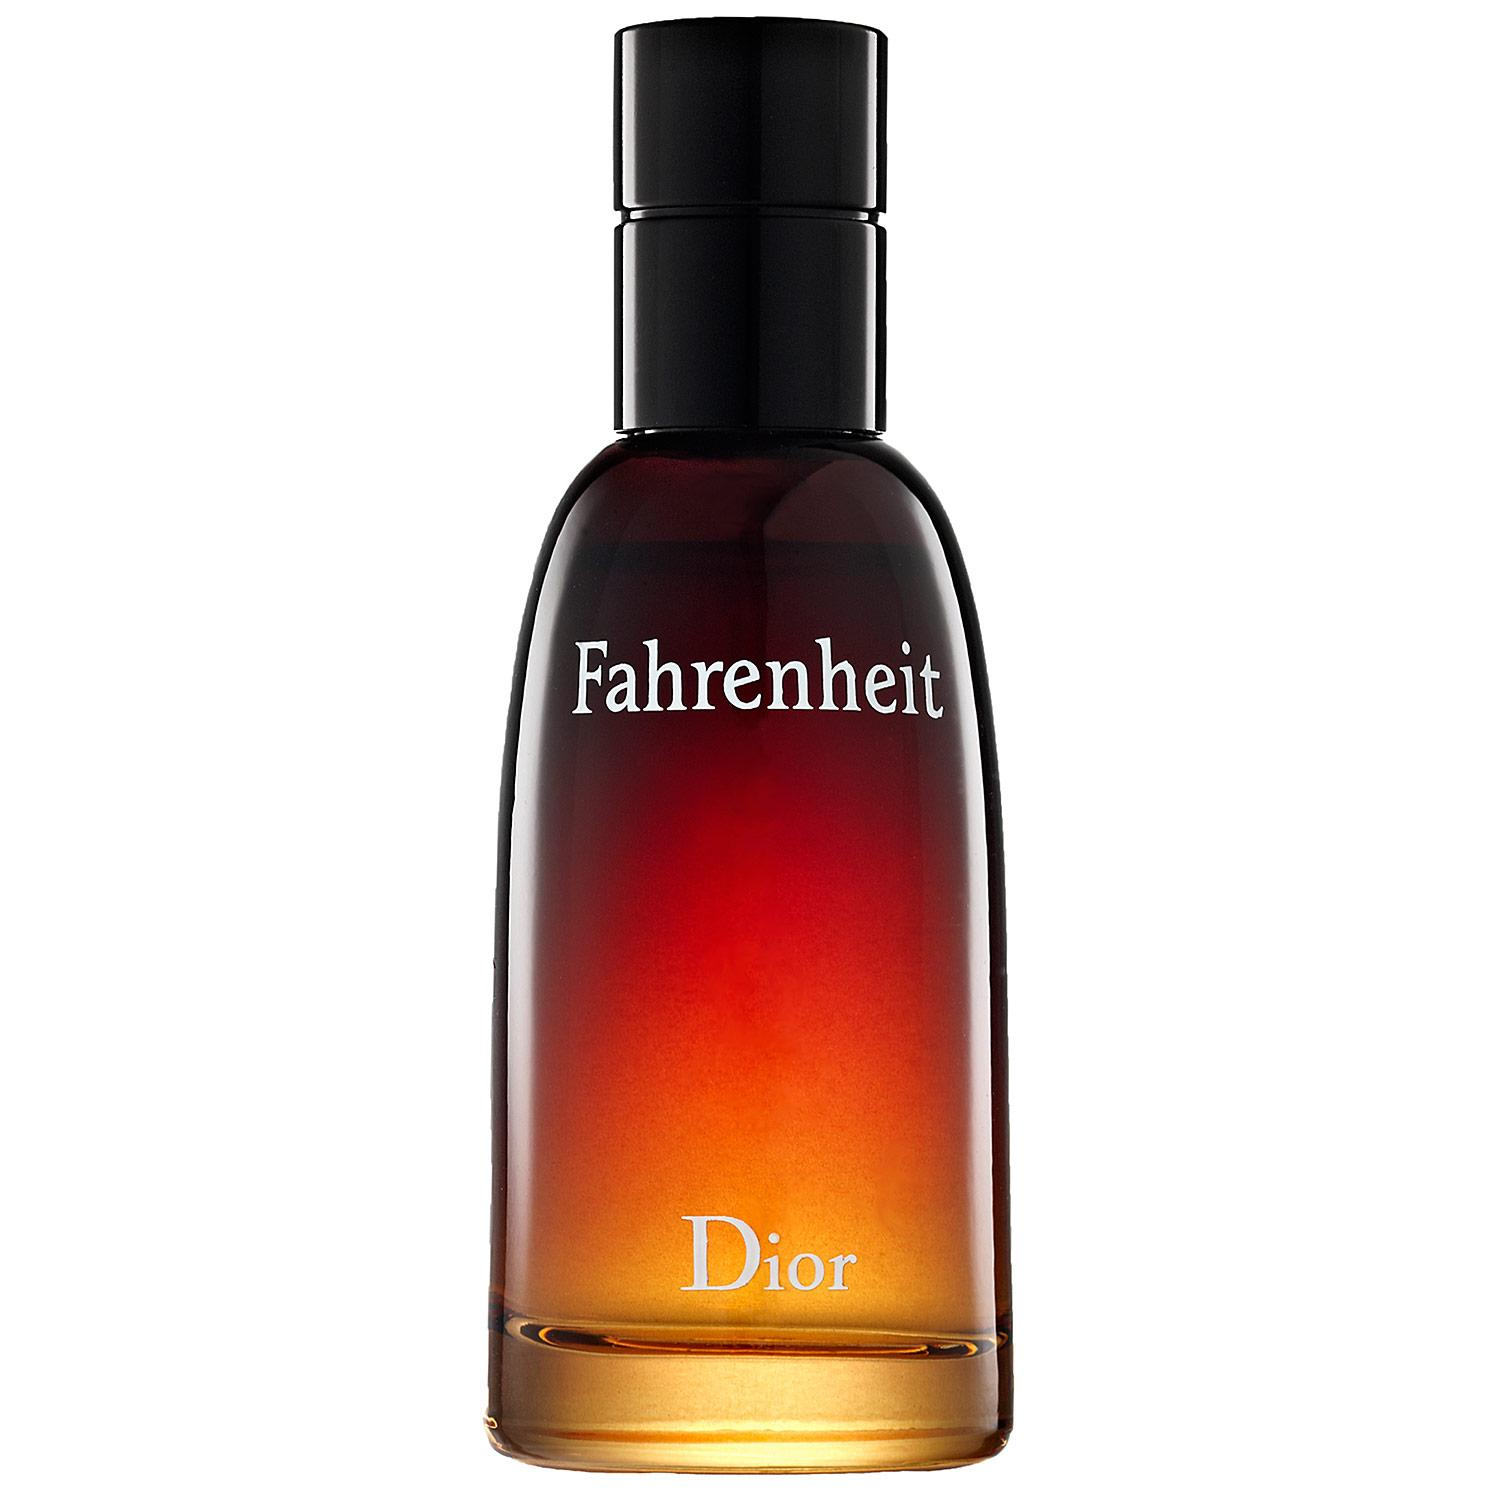 Dior Fahrenheit 32 Questions And Reviews Beautyprowl Com